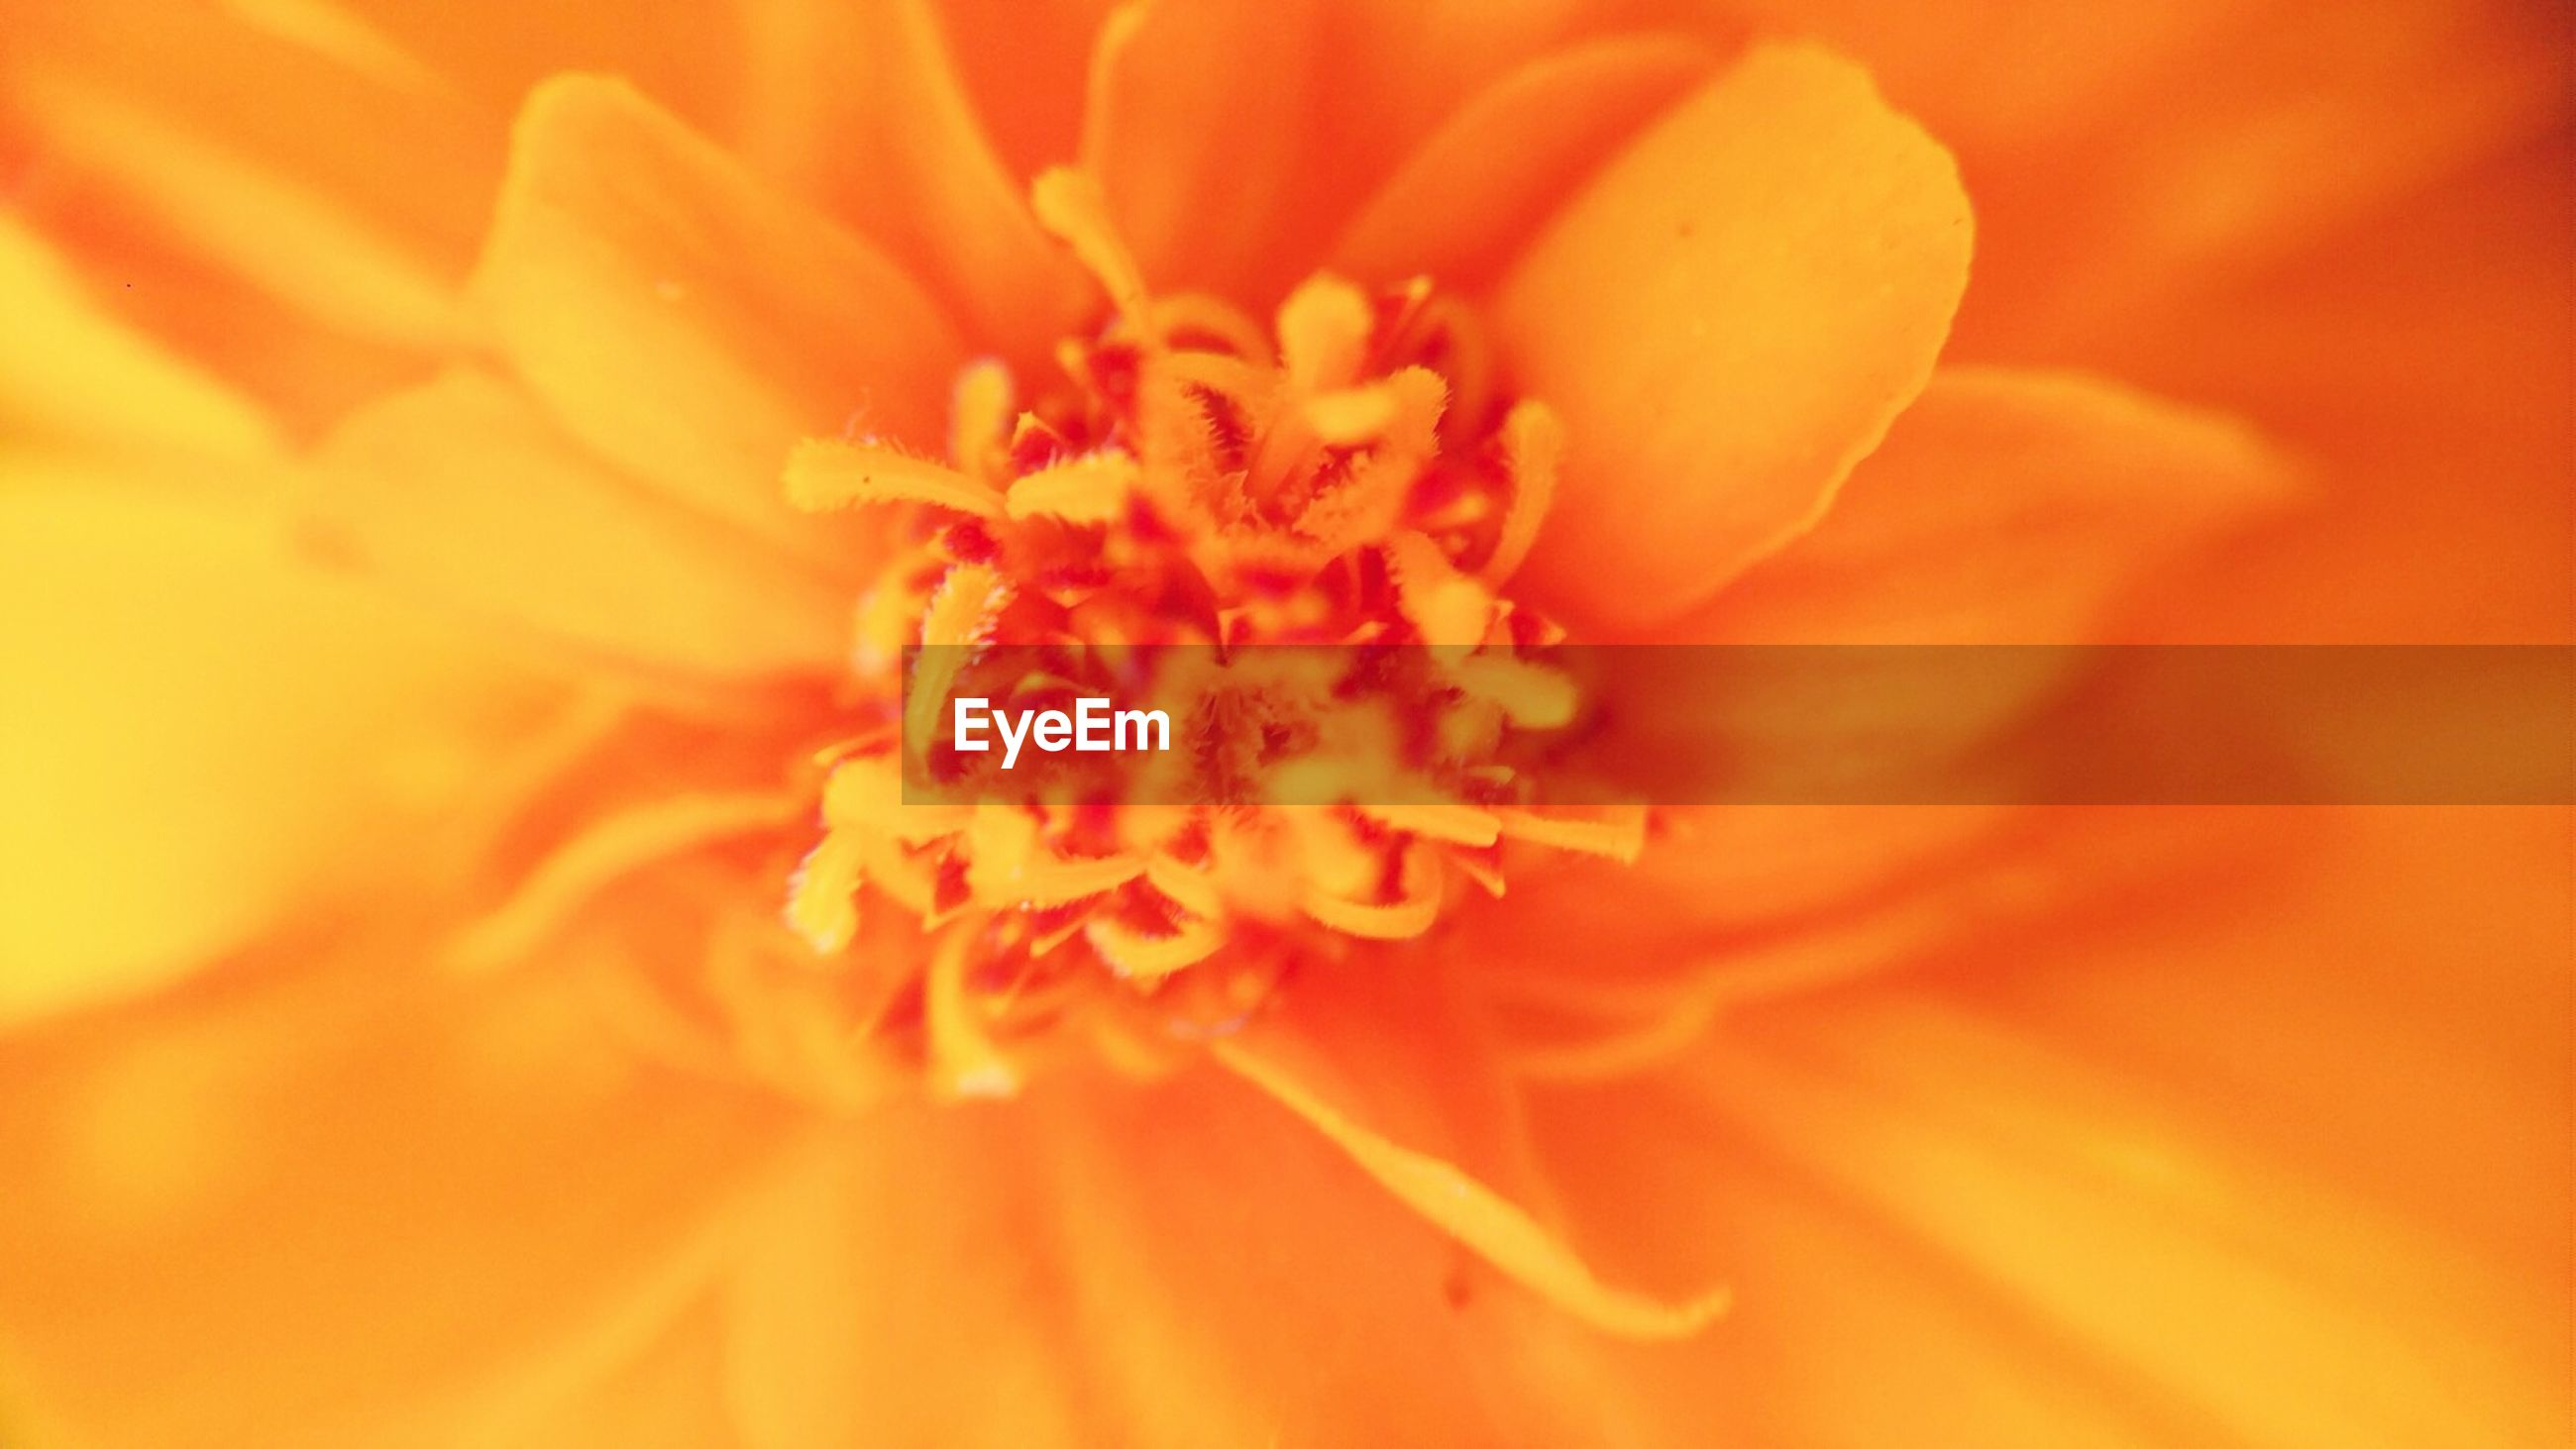 EXTREME CLOSE-UP OF MARIGOLD FLOWER